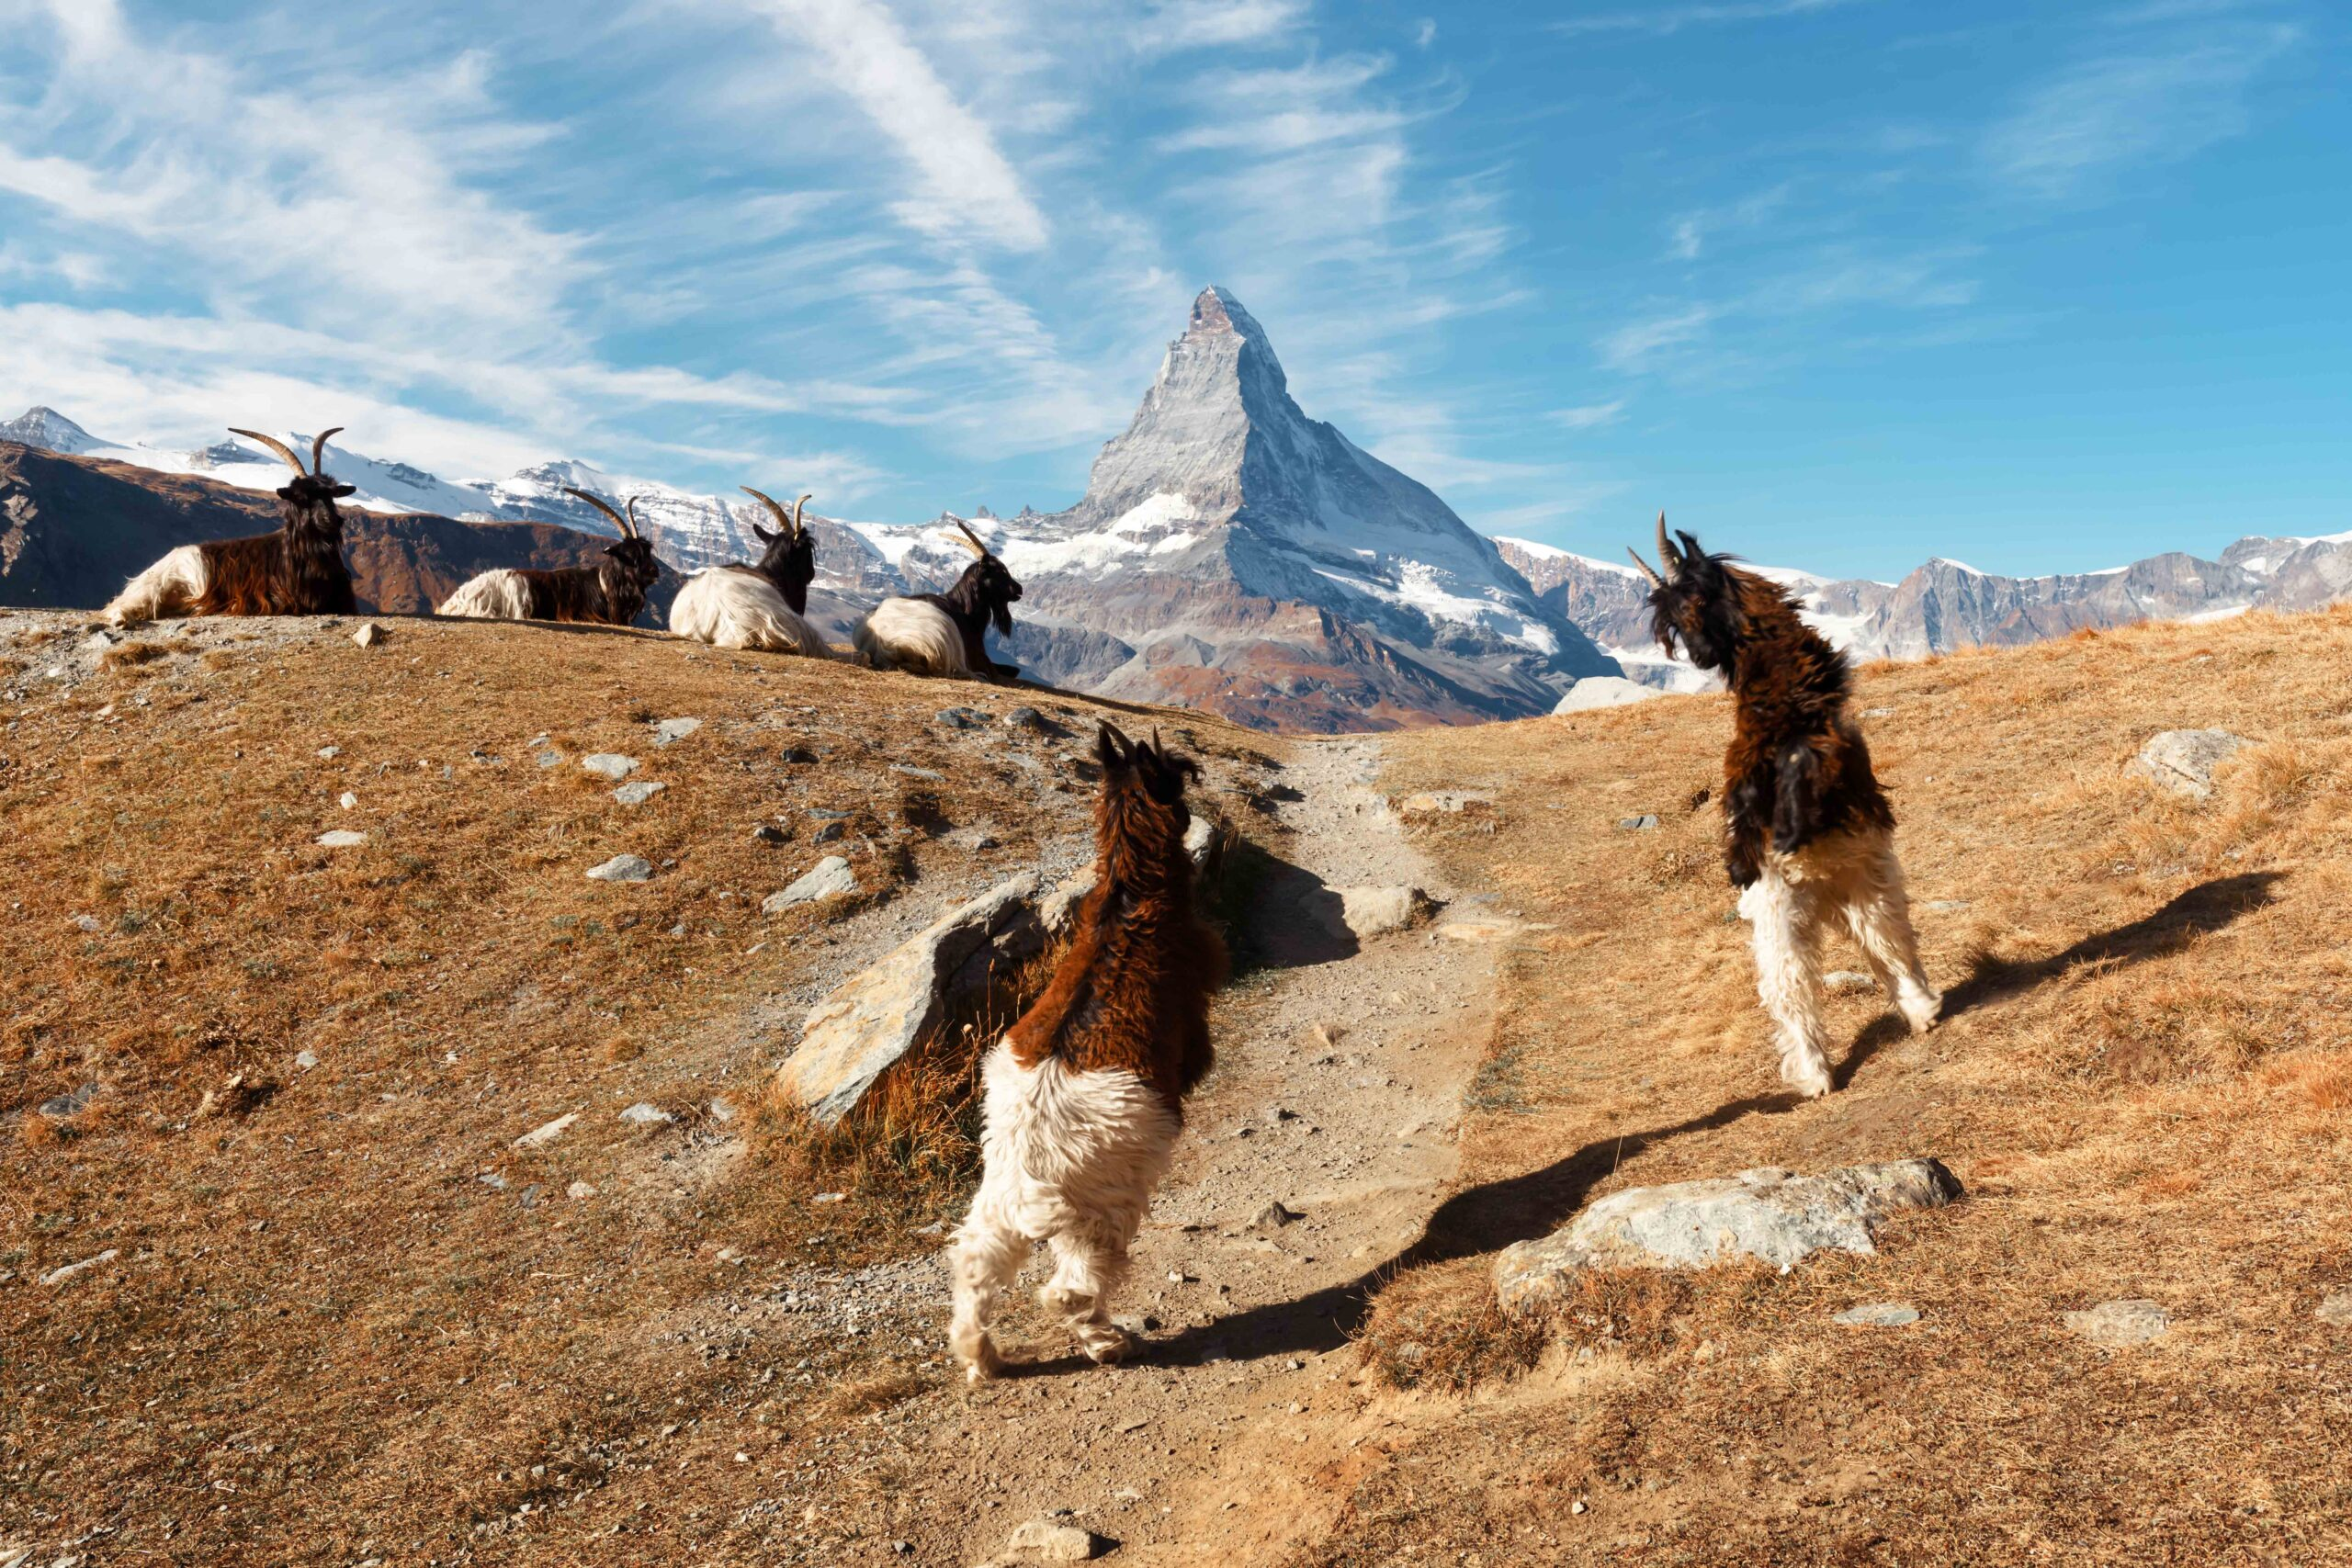 Fighting goats on Matterhorn Cervino peak background near Stellisee lake in Swiss Alps. Zermatt resort location, Switzerland. Landscape photography